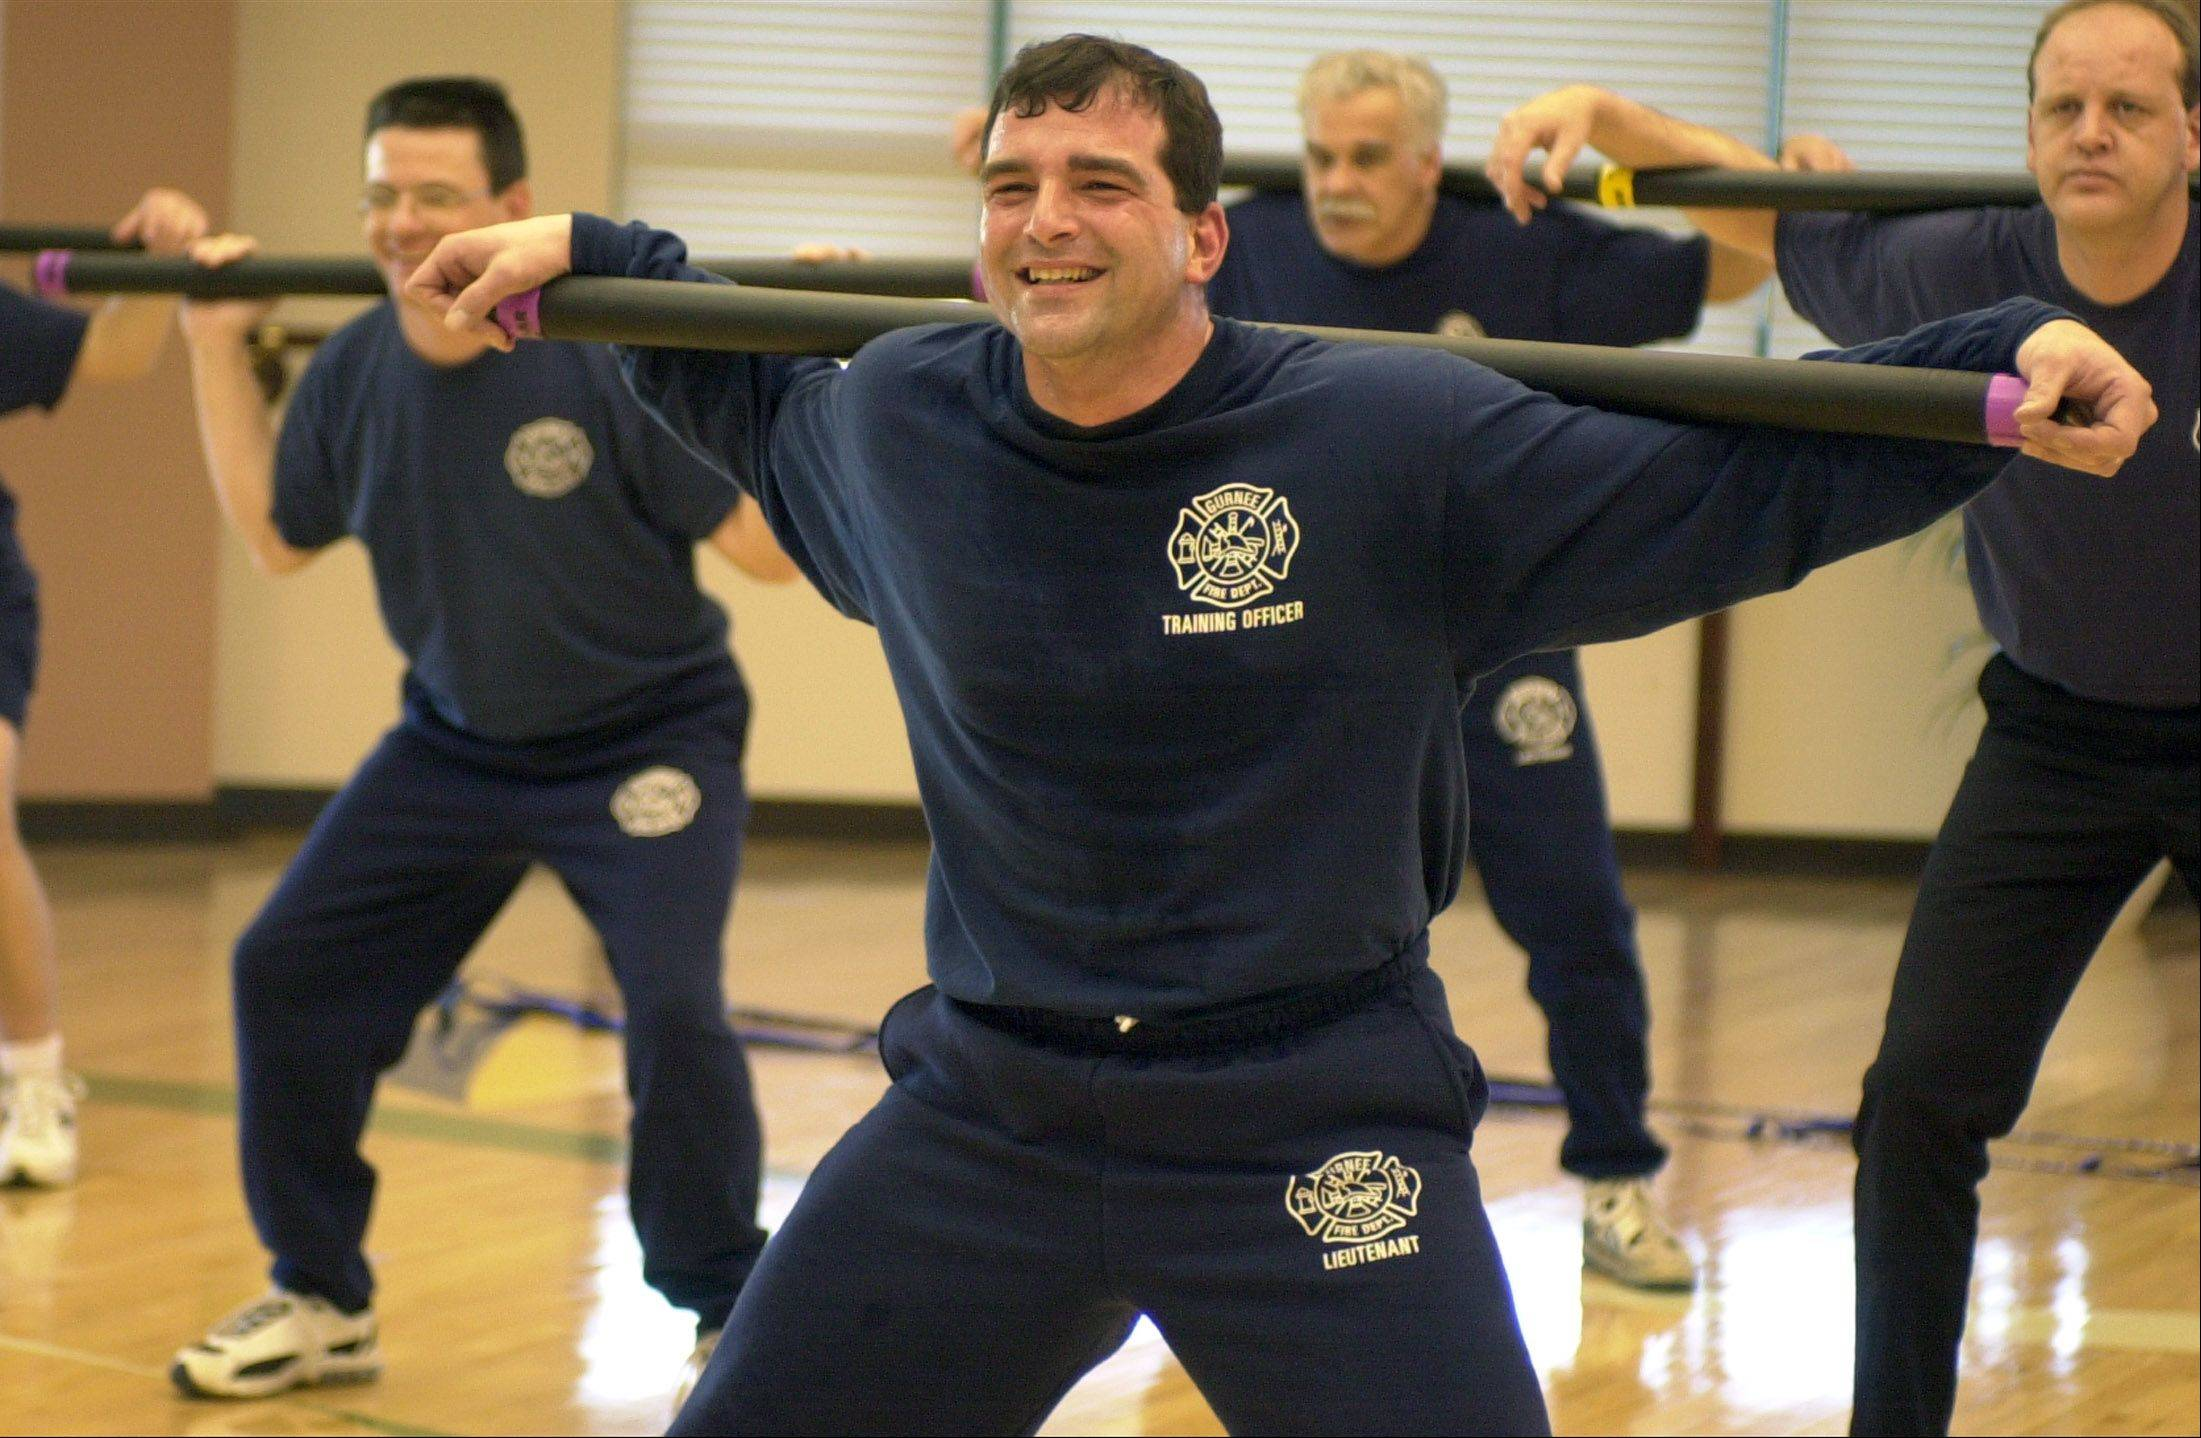 James Pellitteri, center, has handled a variety of duties as a Gurnee firefighter/paramedic, including this work as a training officer during a fitness and nutrition program in 2002.